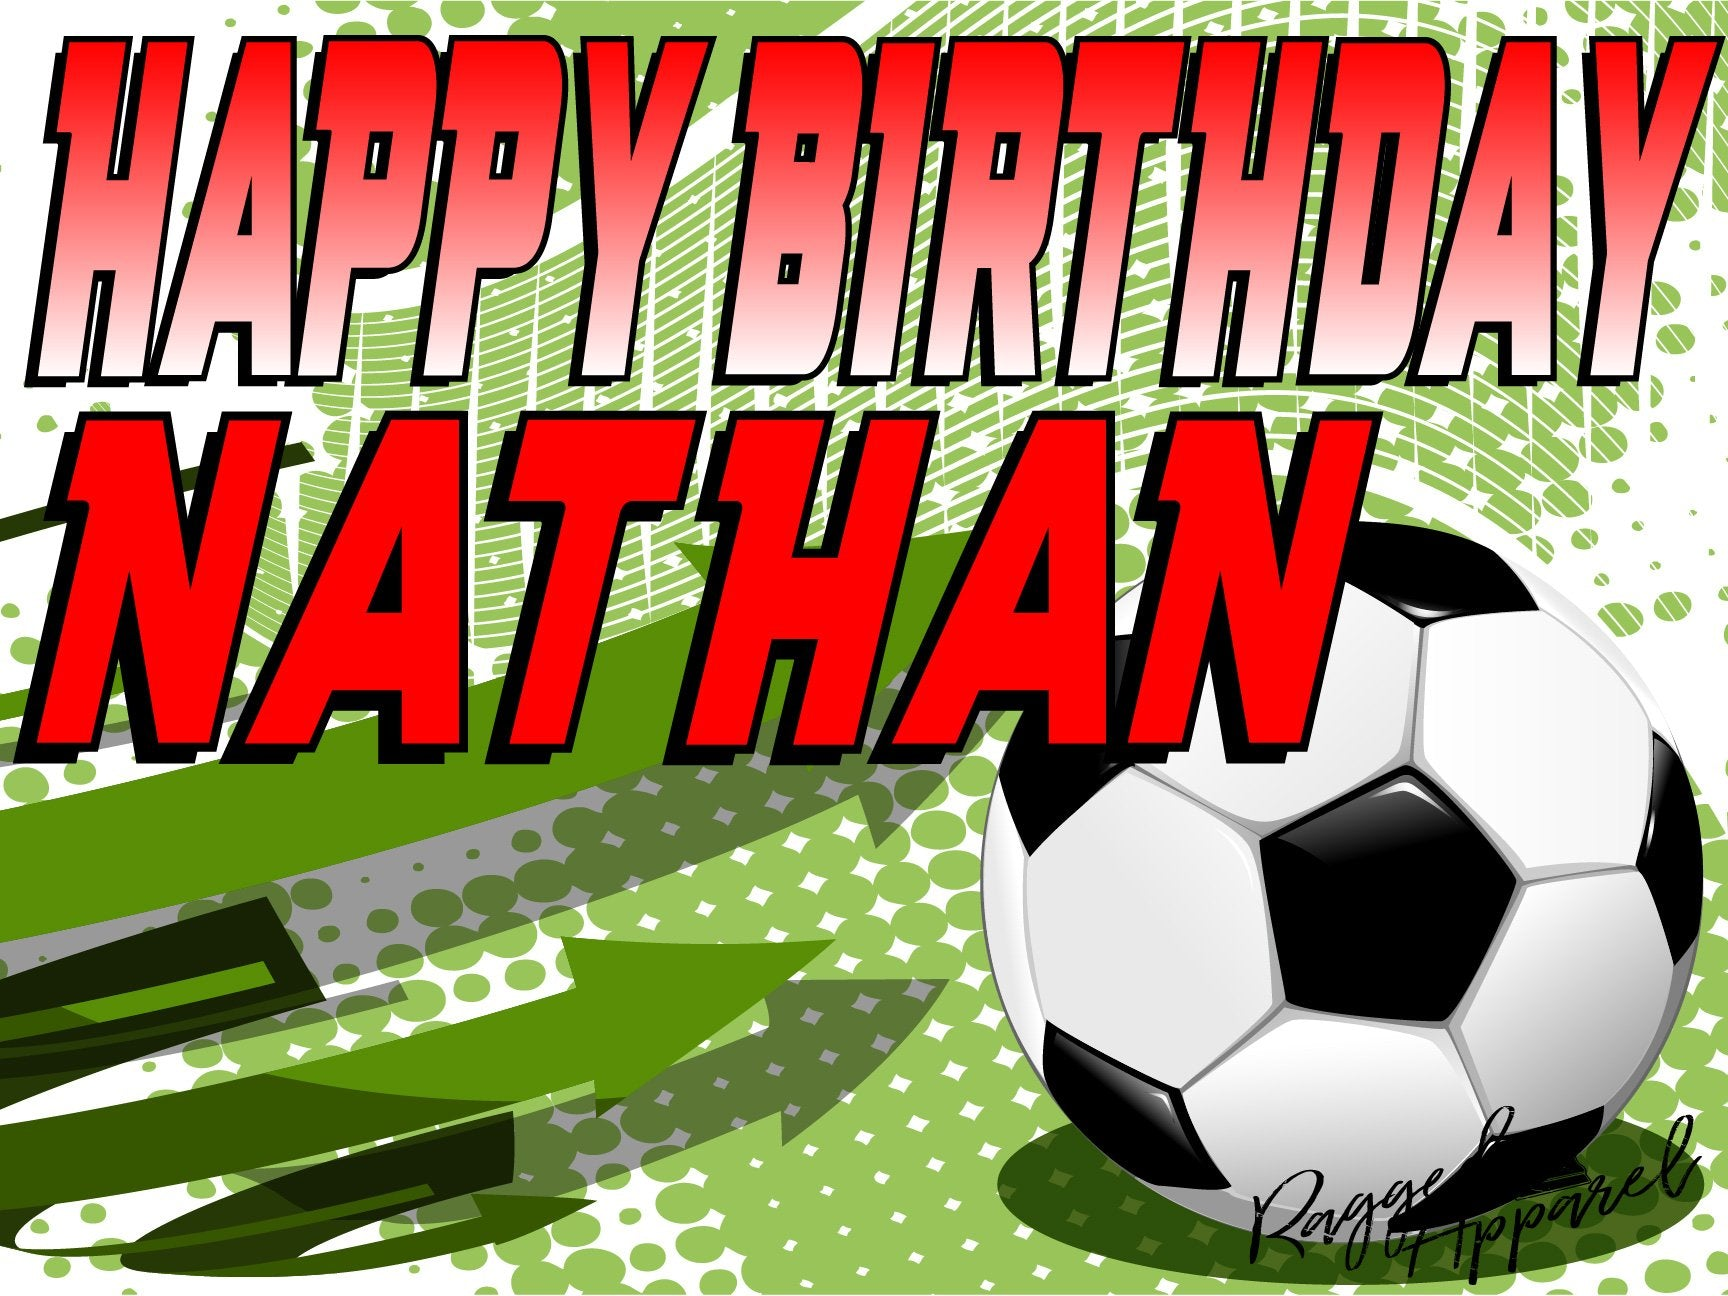 Kids Personalized Soccer Birthday Sign - Ragged Apparel Screen Printing and Signs - www.nmshirts.com